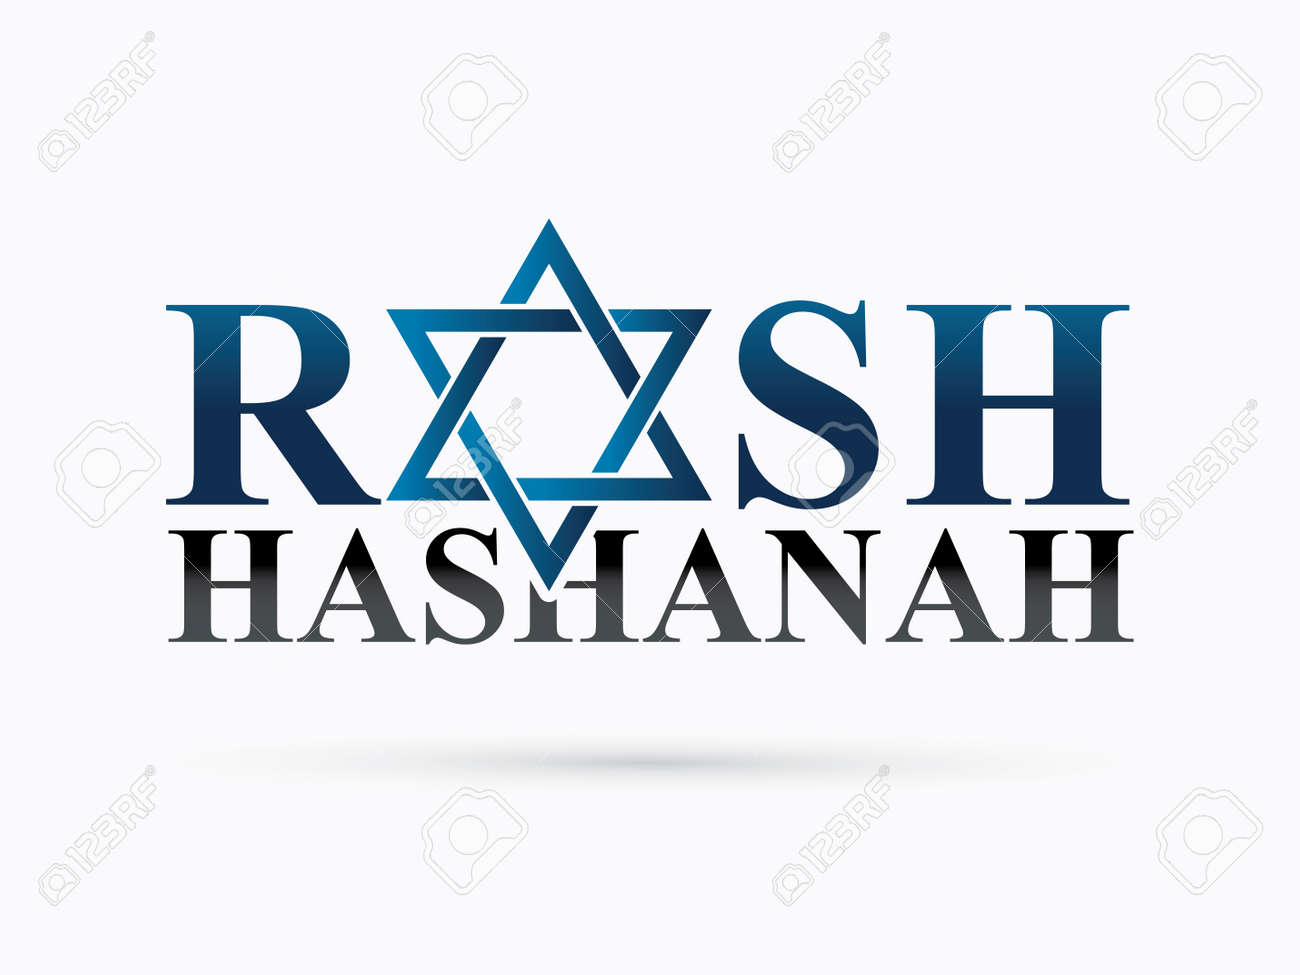 Rosh Hashanah text design, Rosh Hashanah is a Hebrew word meaning